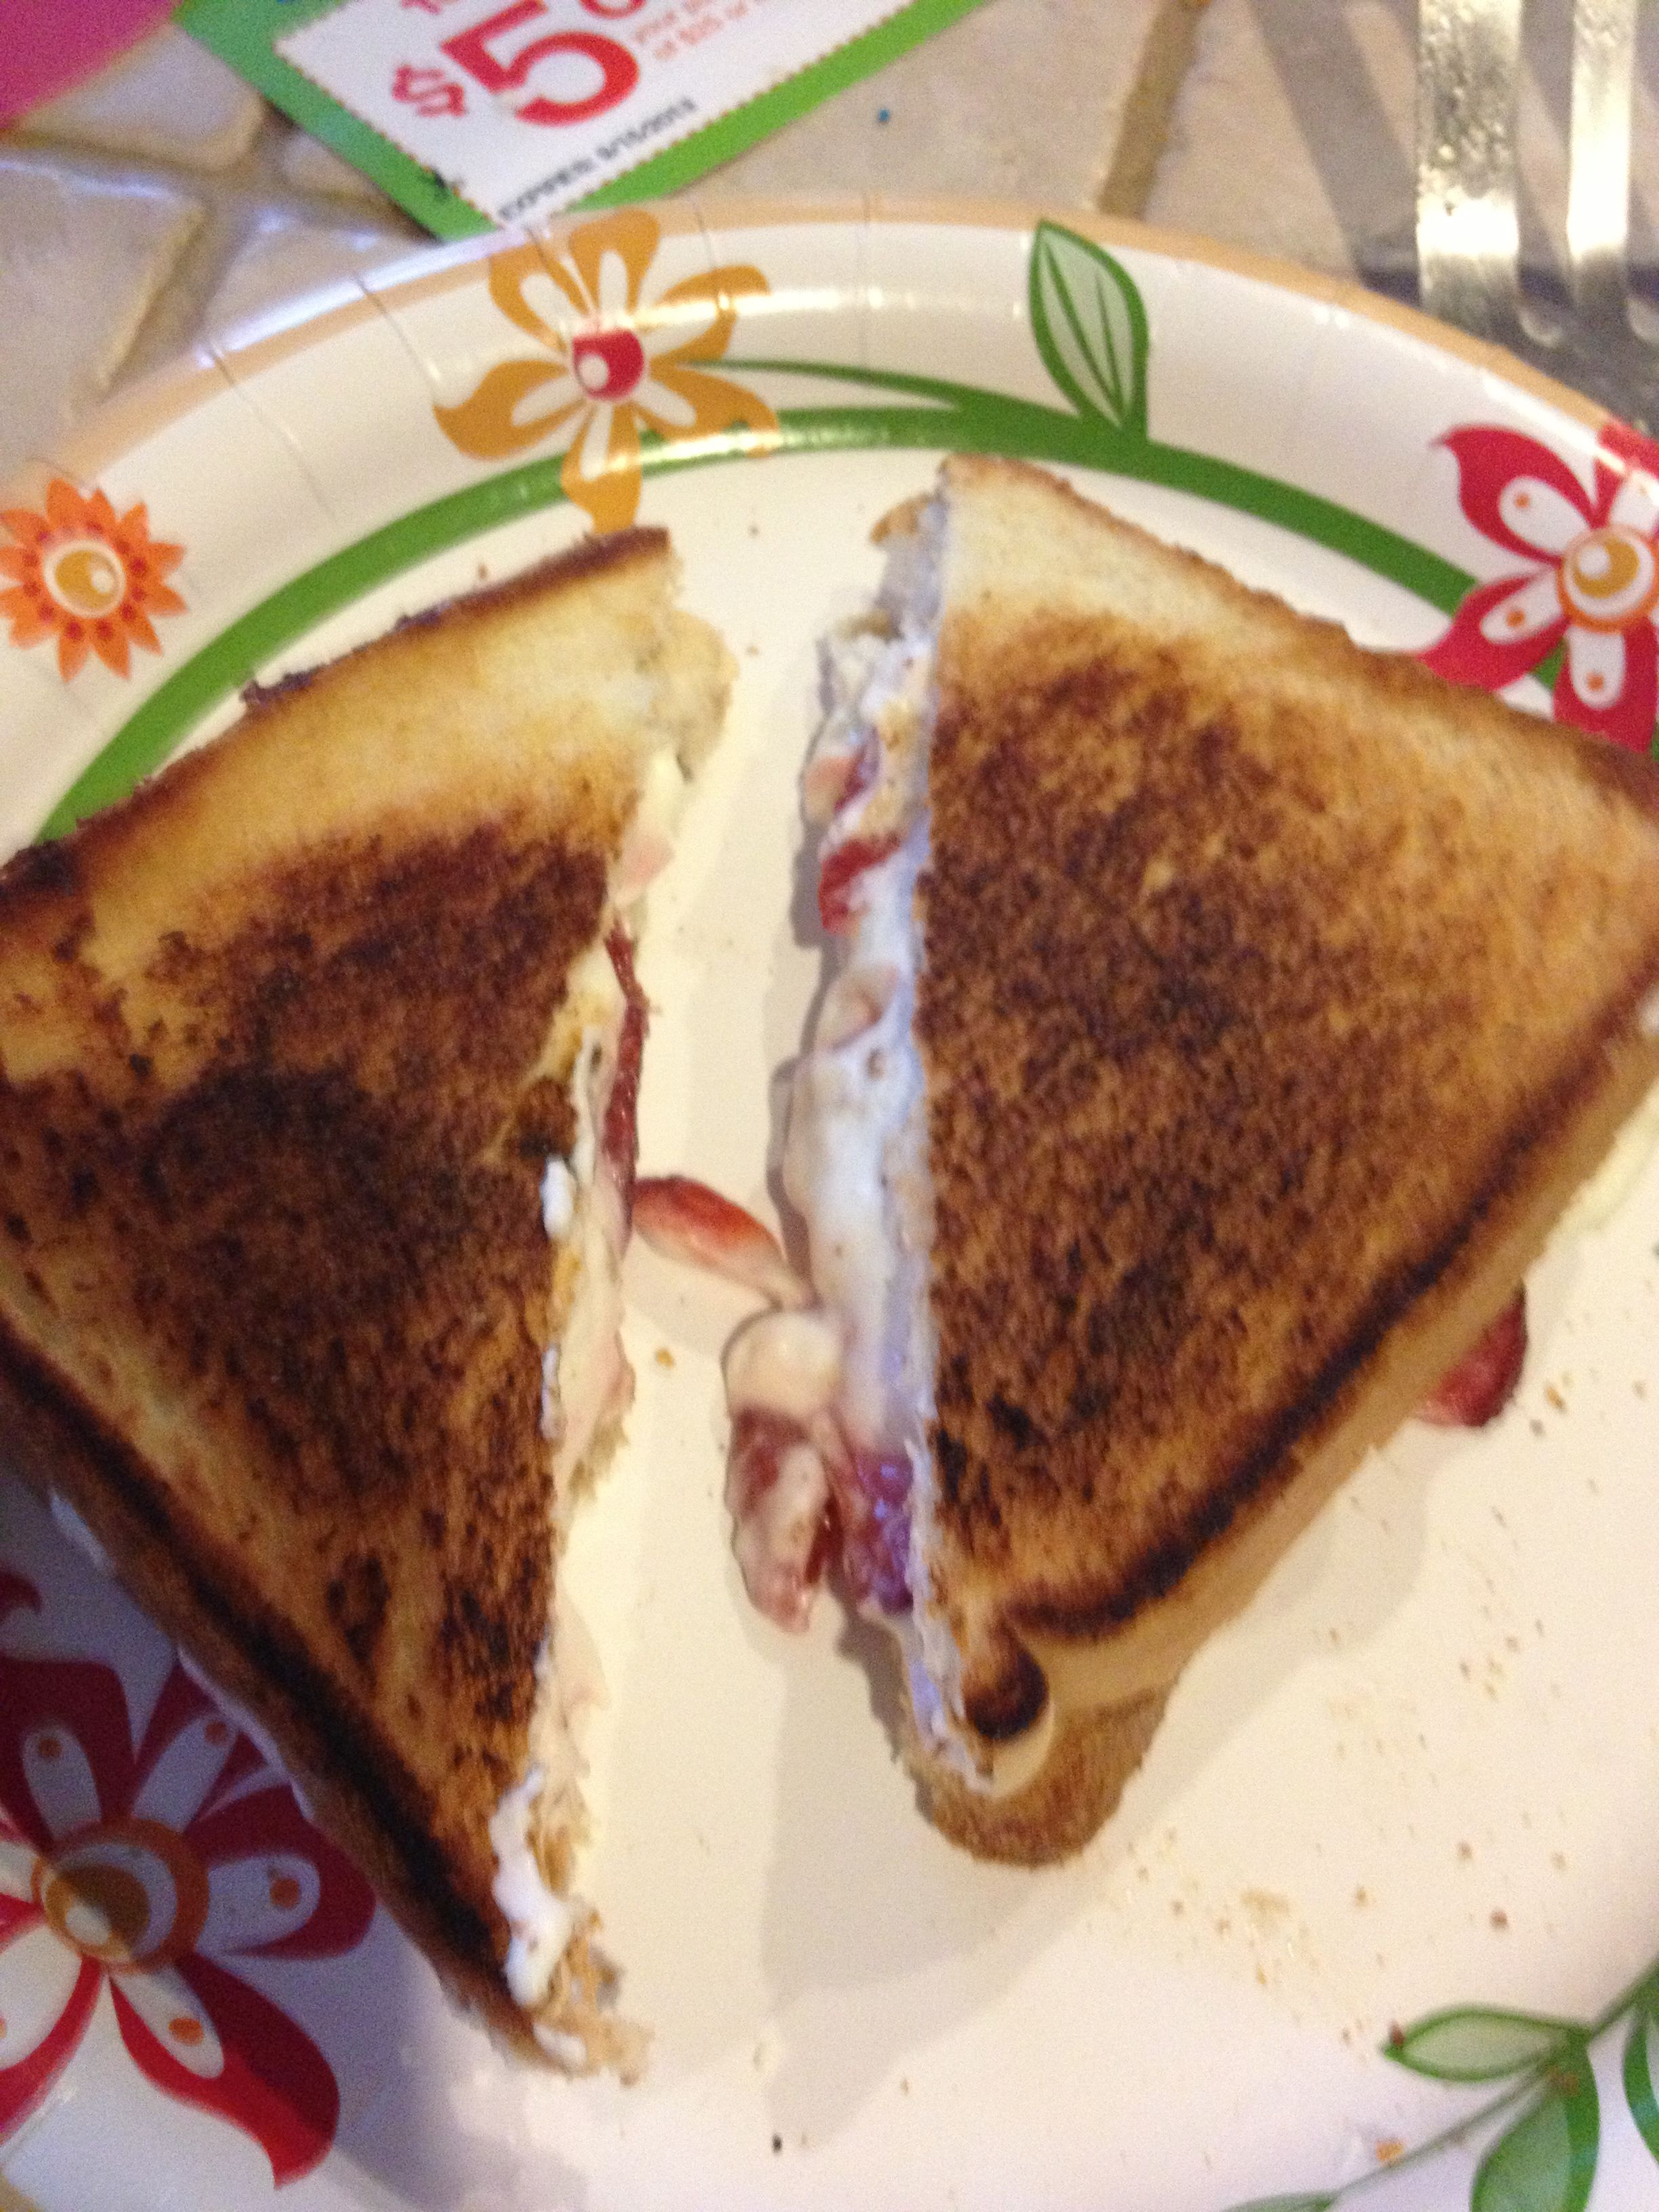 Strawberry and creamcheese grilled cheese  Yummiest !